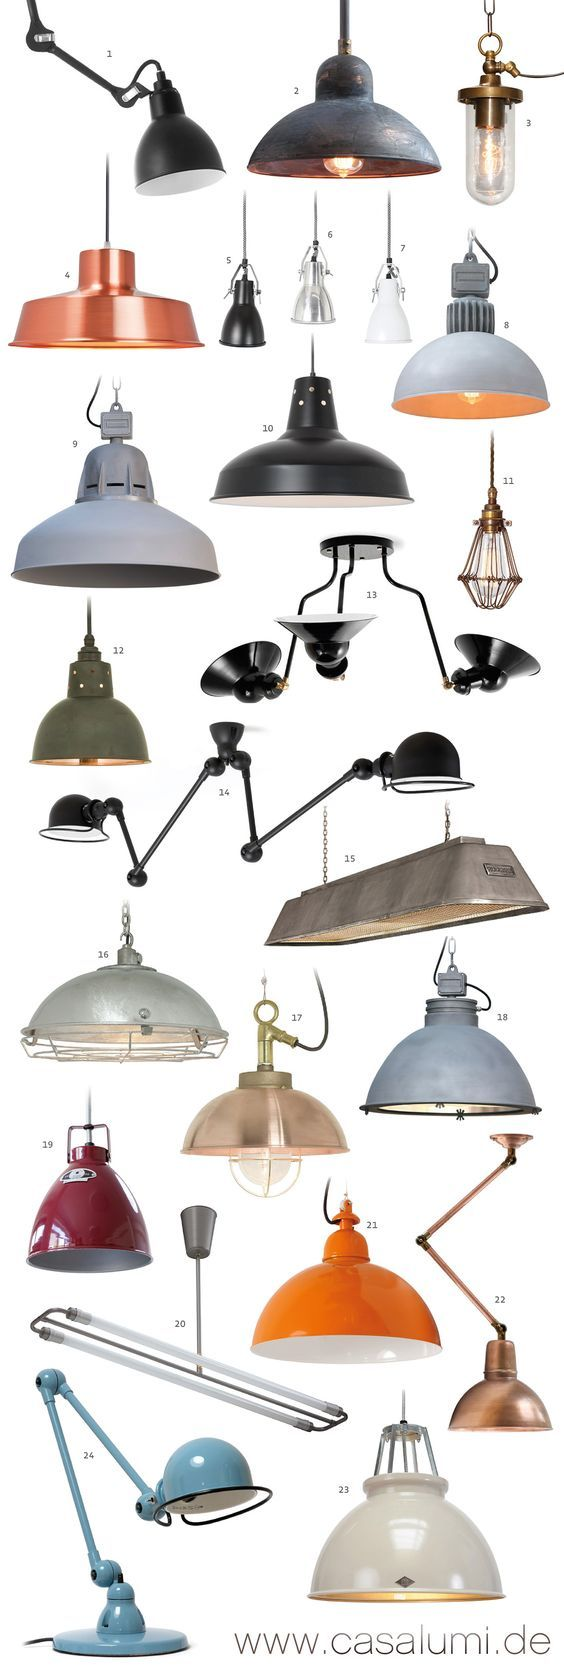 industrial style pendant lighting. 23 Industrielampen Und Eine Tischleuchte * Industrial Style Pendant Lights And One Table Lamp: Lighting